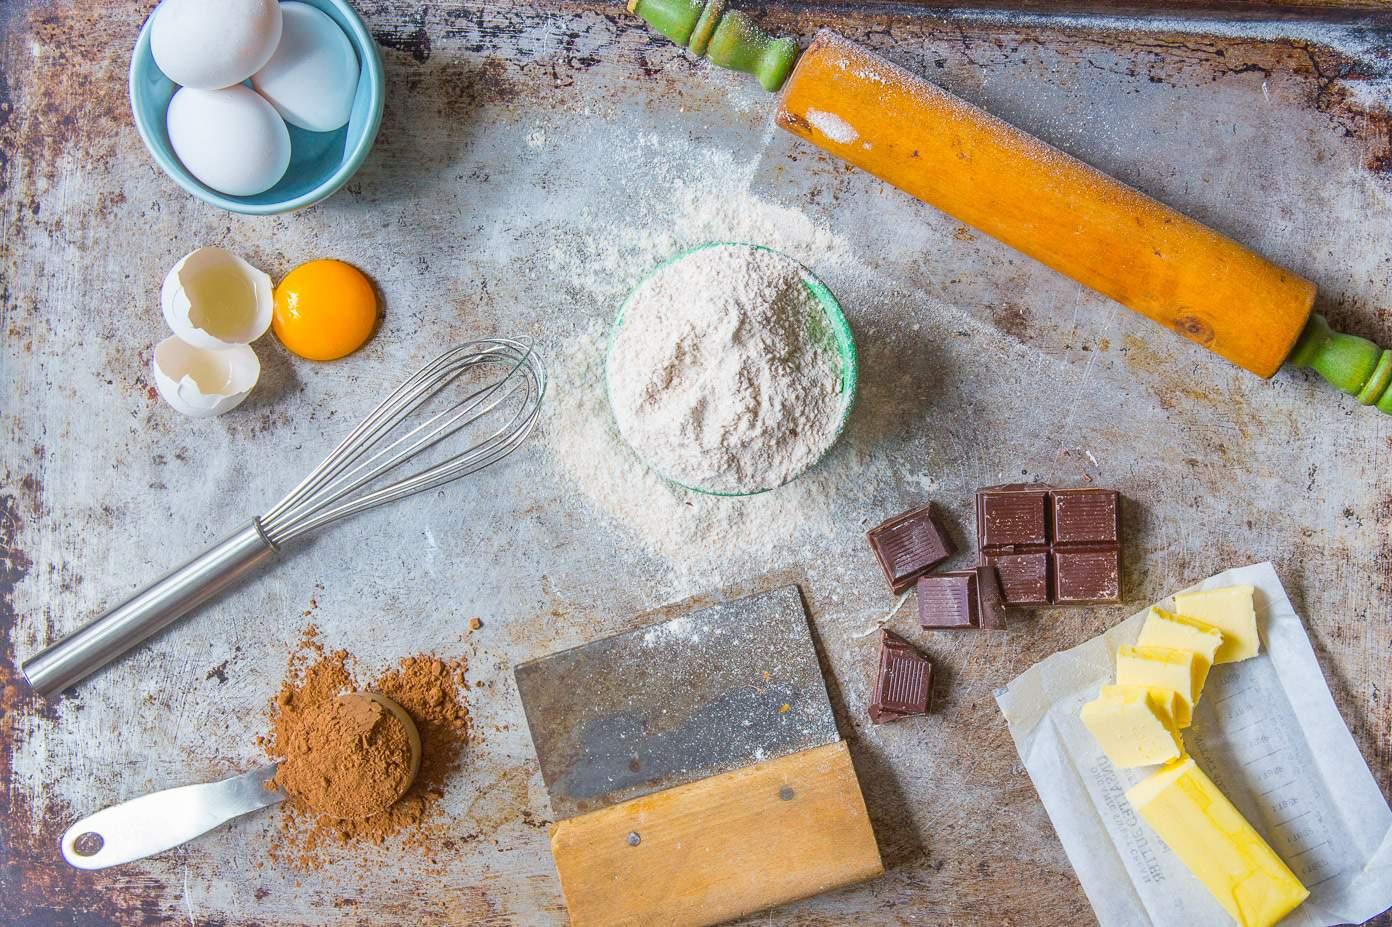 Fundamentals of Baking Course